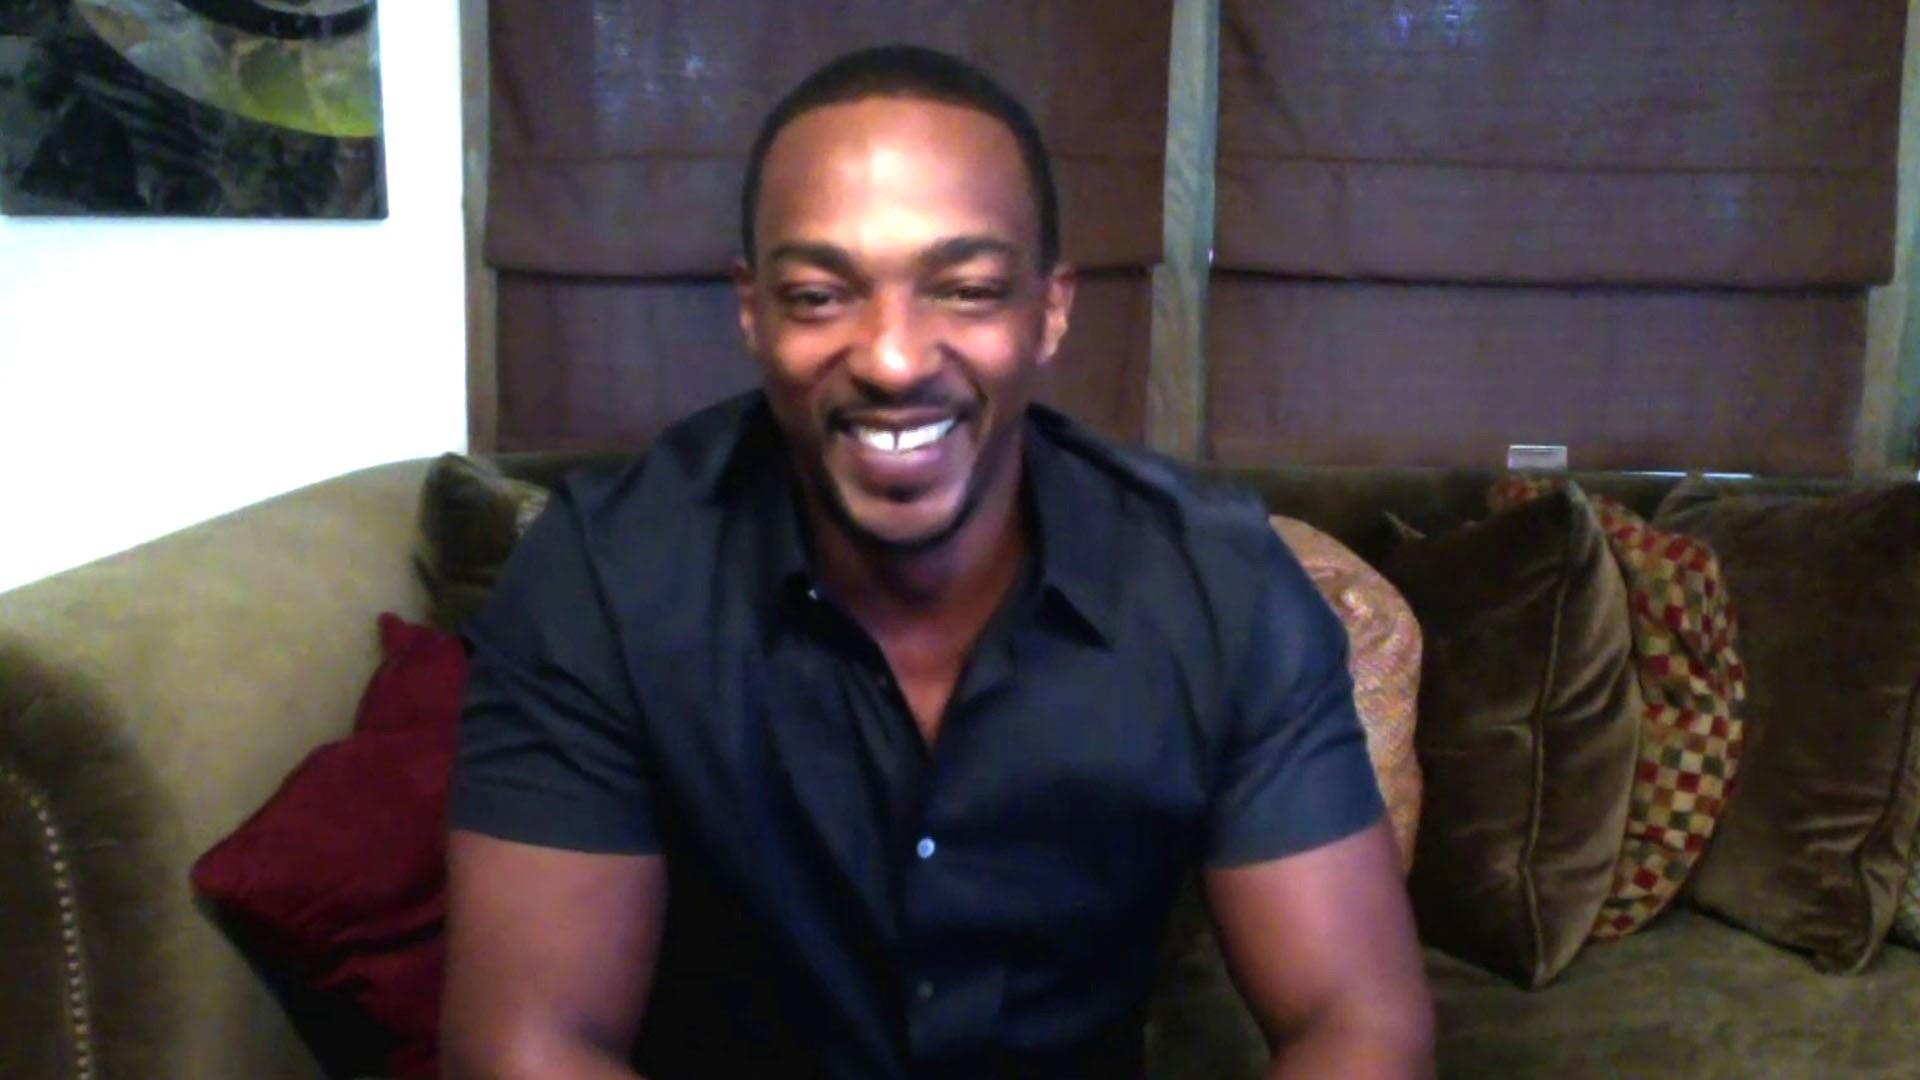 news.yahoo.com: Anthony Mackie talks about film 'Outside the Wire'